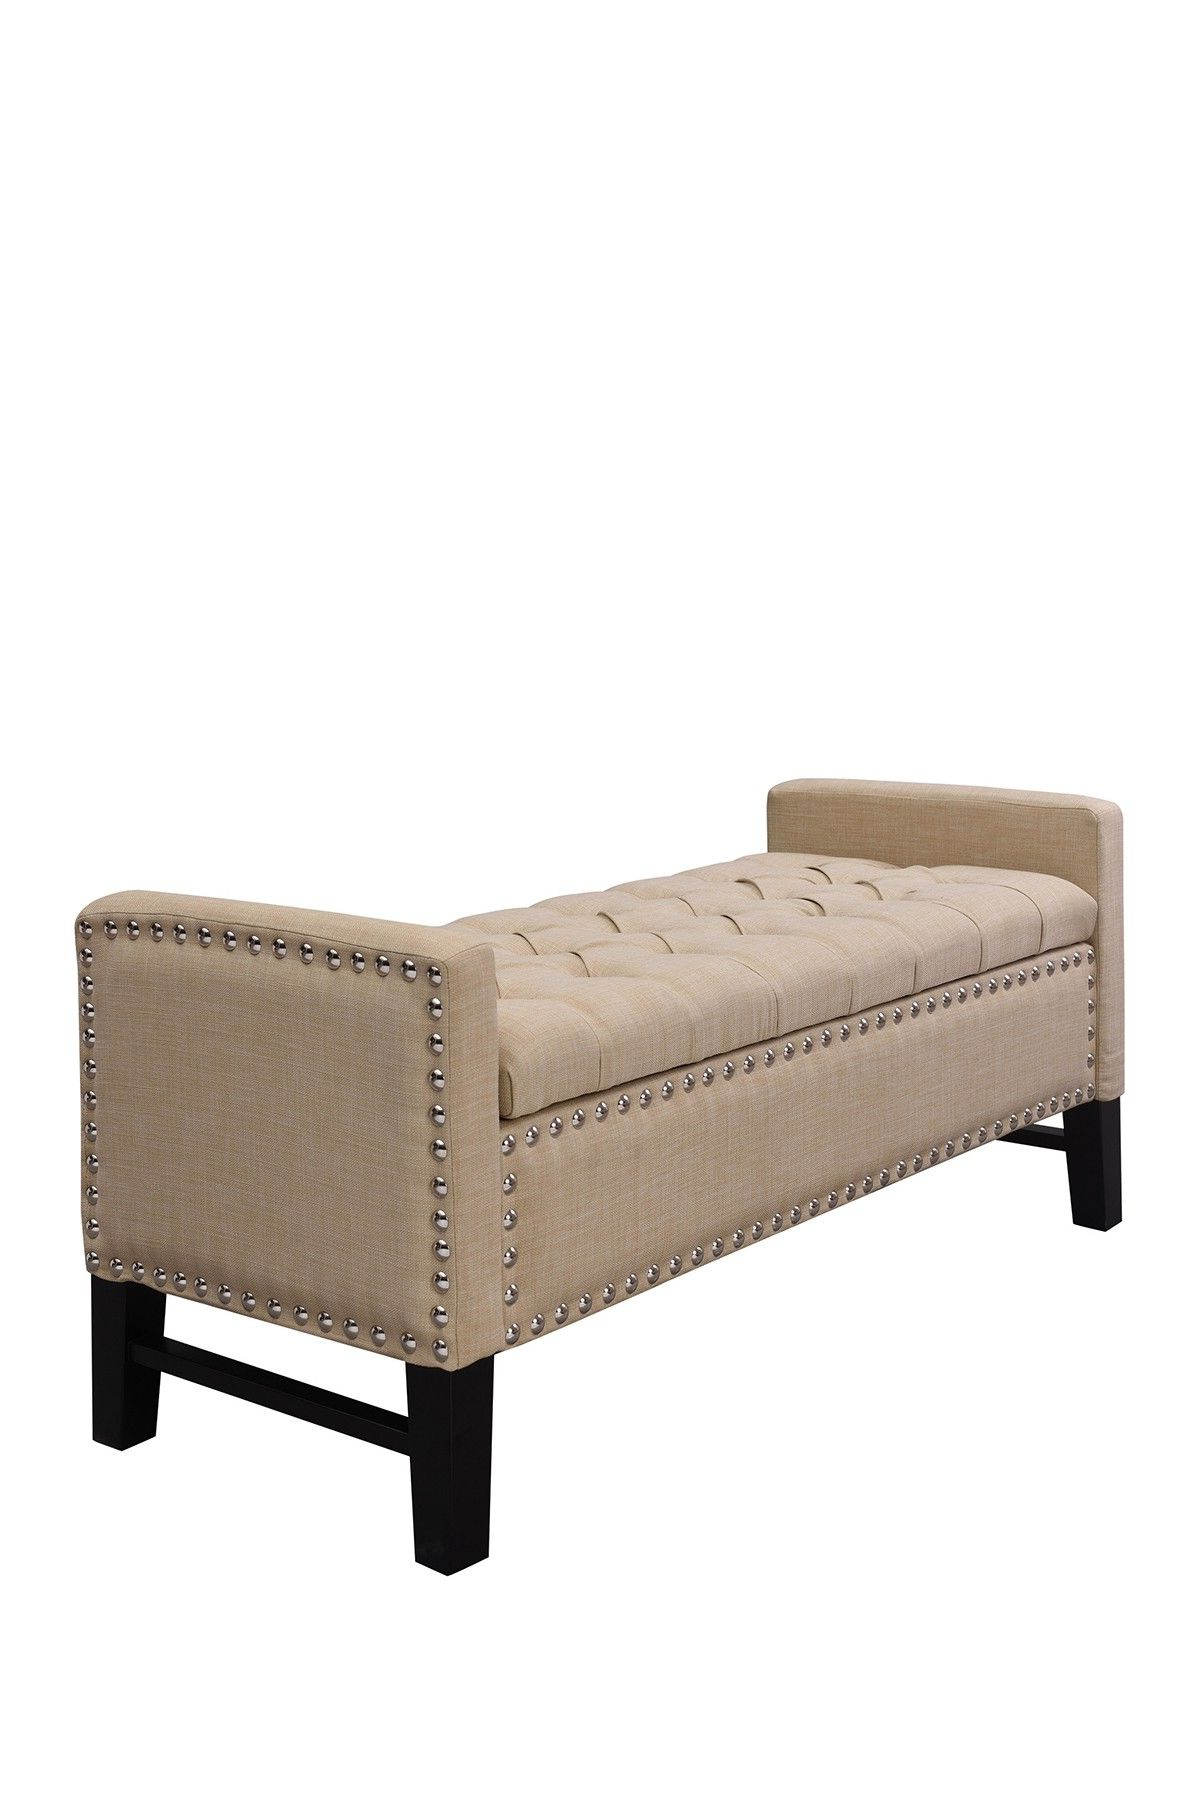 Scarlett Beige Sofas Intended For Widely Used Inspired Home Scarlett Linen Modern Contemporary Button (View 2 of 15)